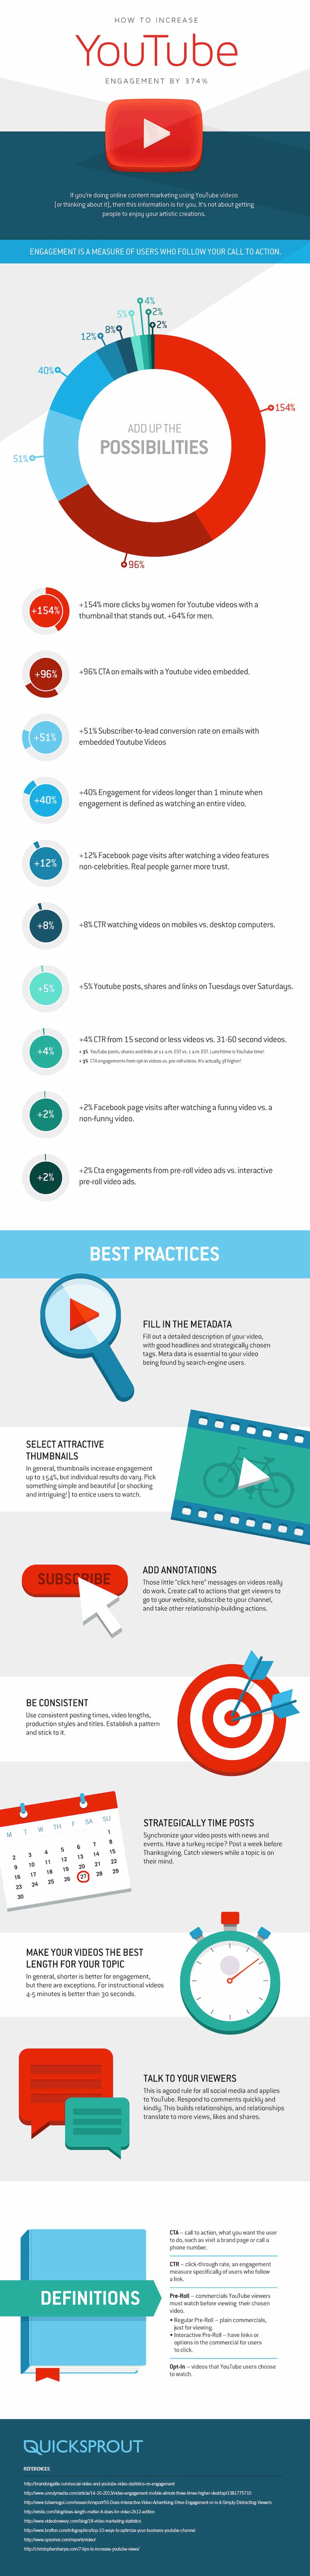 How to increase YouTube engagement [infographic]